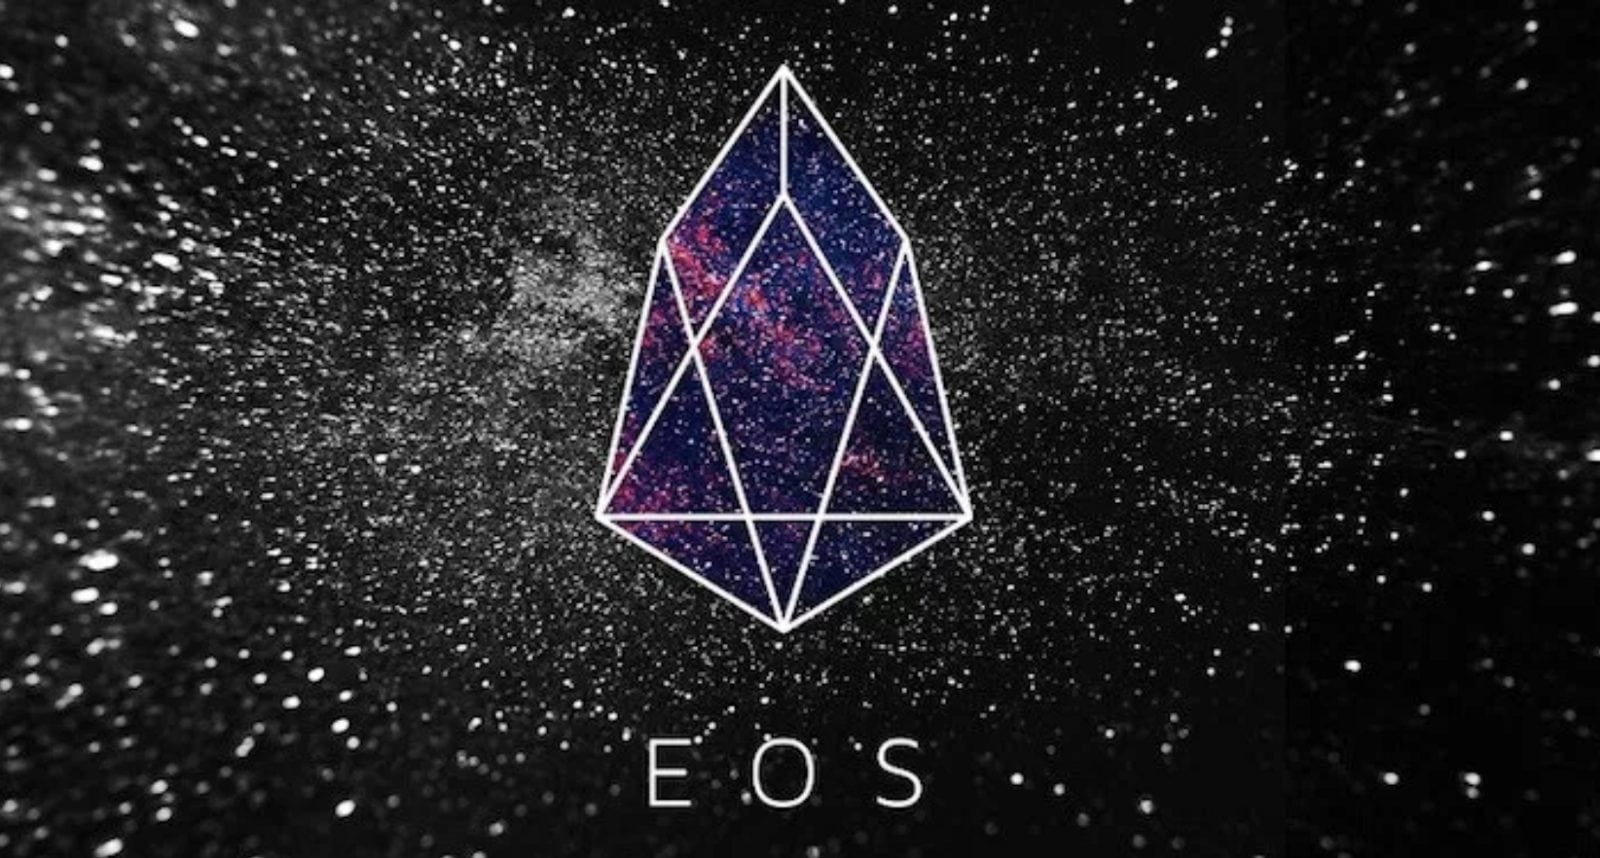 1 5i3SA6pIP2kc7oqUQNqhZw - Three Cryptos That Will Survive A Potential Altcoin Apocalypse: Stellar Lumens, Monero, And EOS